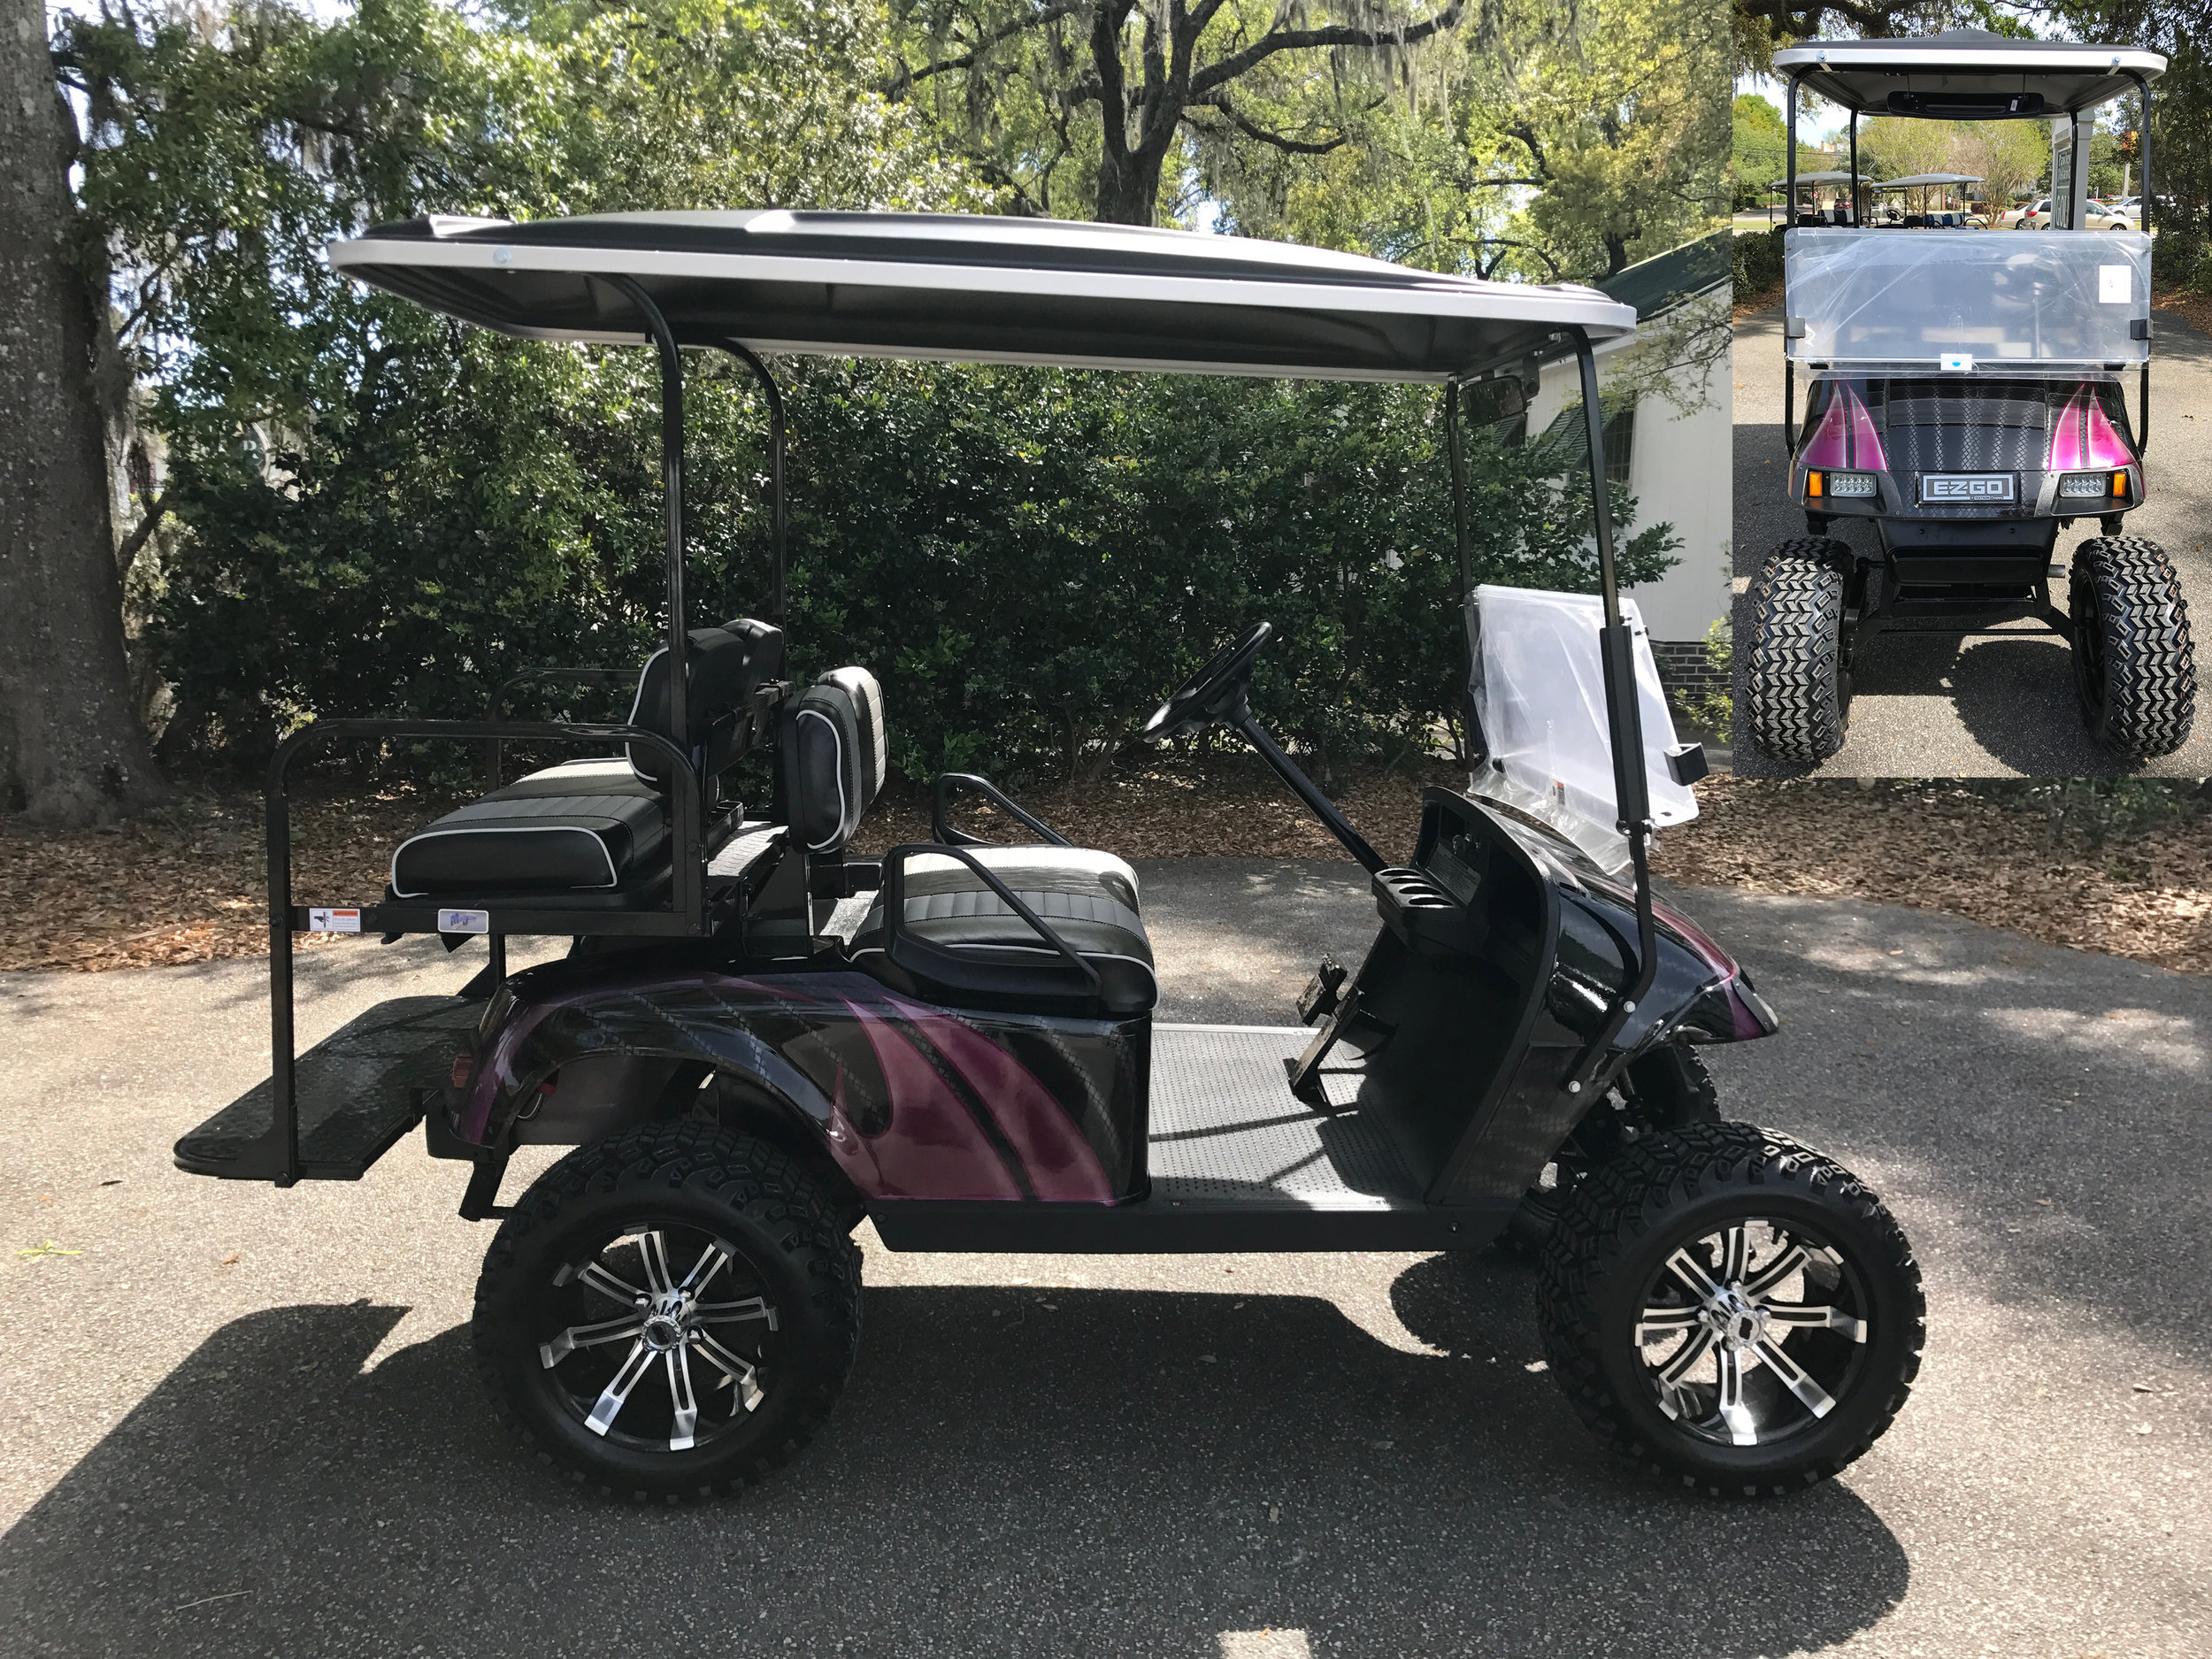 Magenta Swirl EZGO Lifted Cart  Black/charcoal seats, black extended top, new batteries, high speed code, LED lights, Backlash (23x10x14) tires, mirror, flip windshield, and state of charge meter